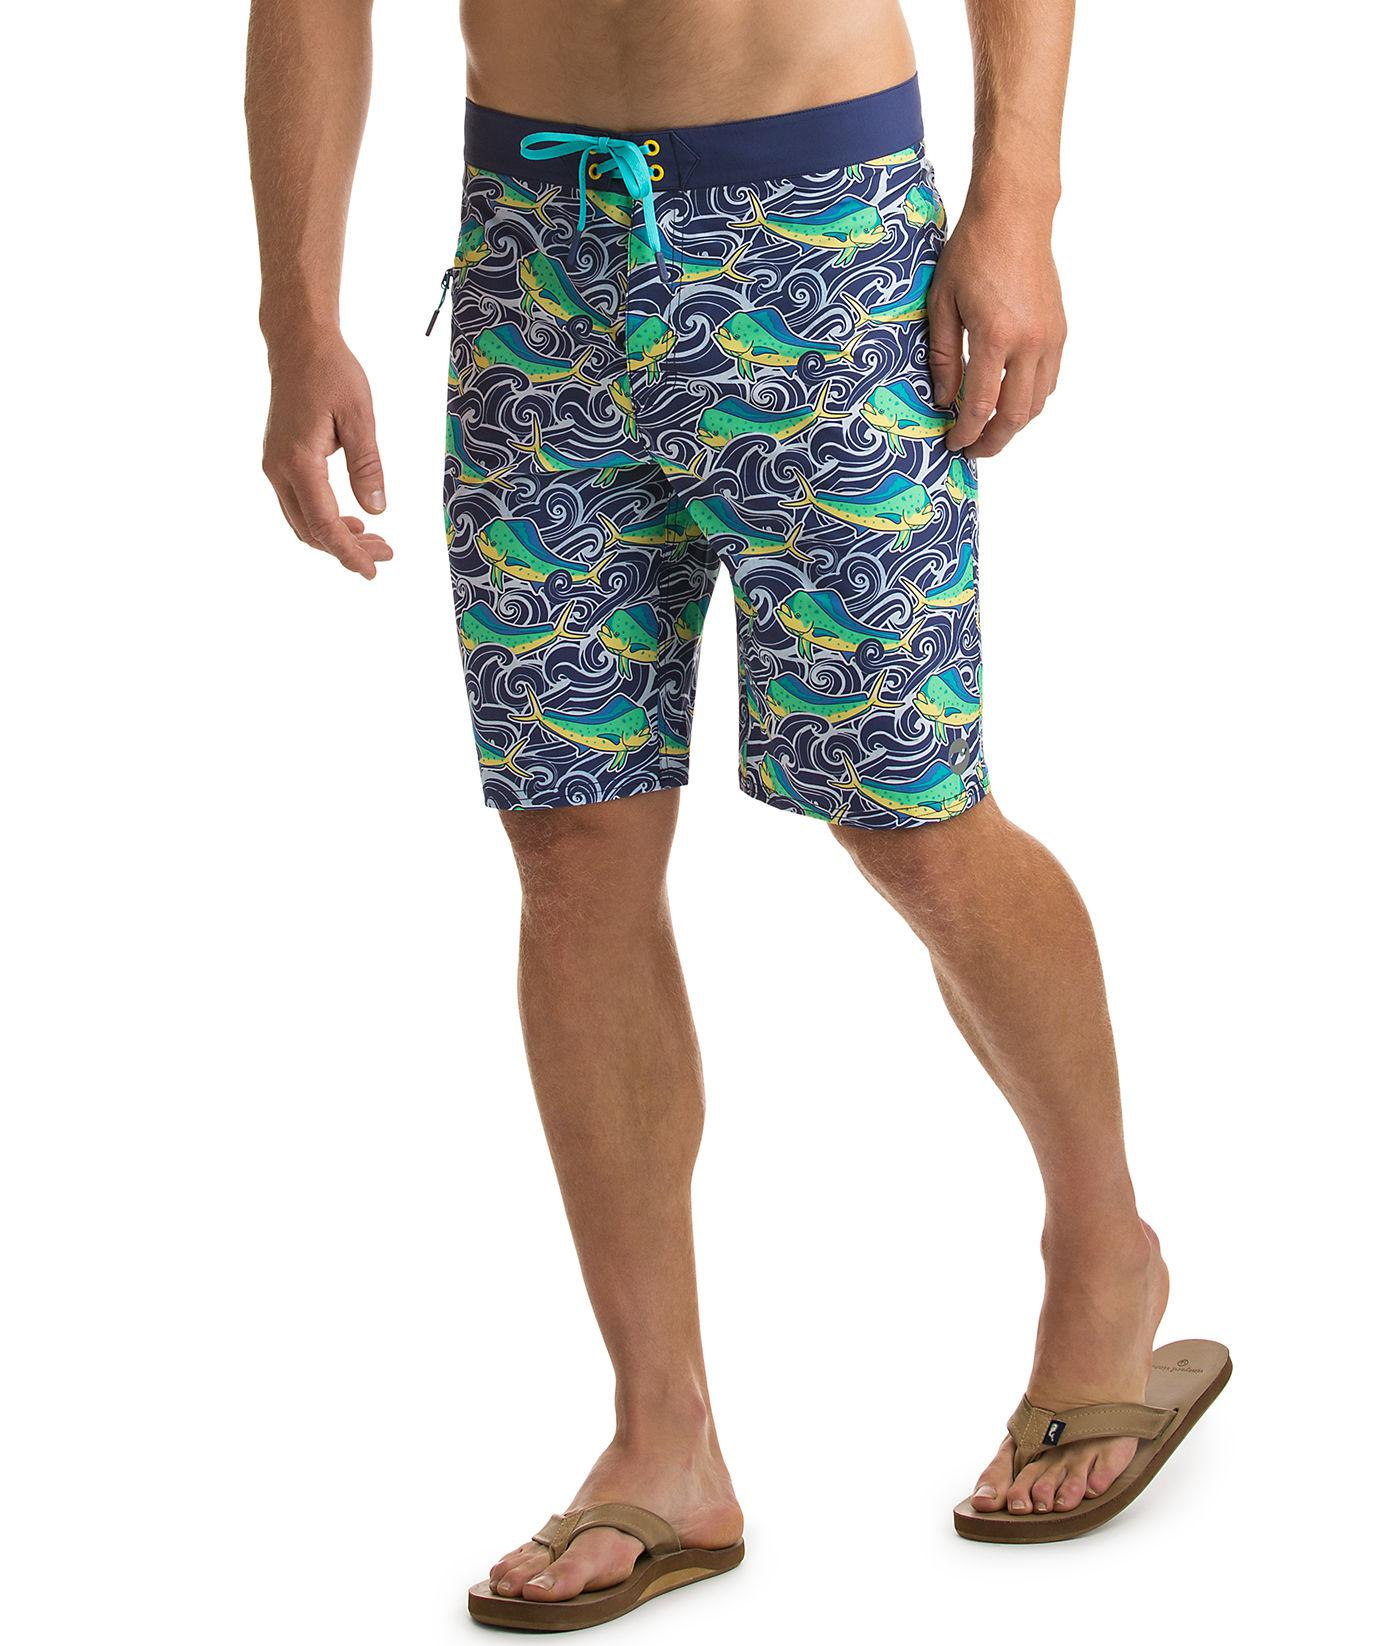 84f6e03466 Vineyard Vines Dolphin Fish Wave Laser Cut Board Shorts in Blue for ...